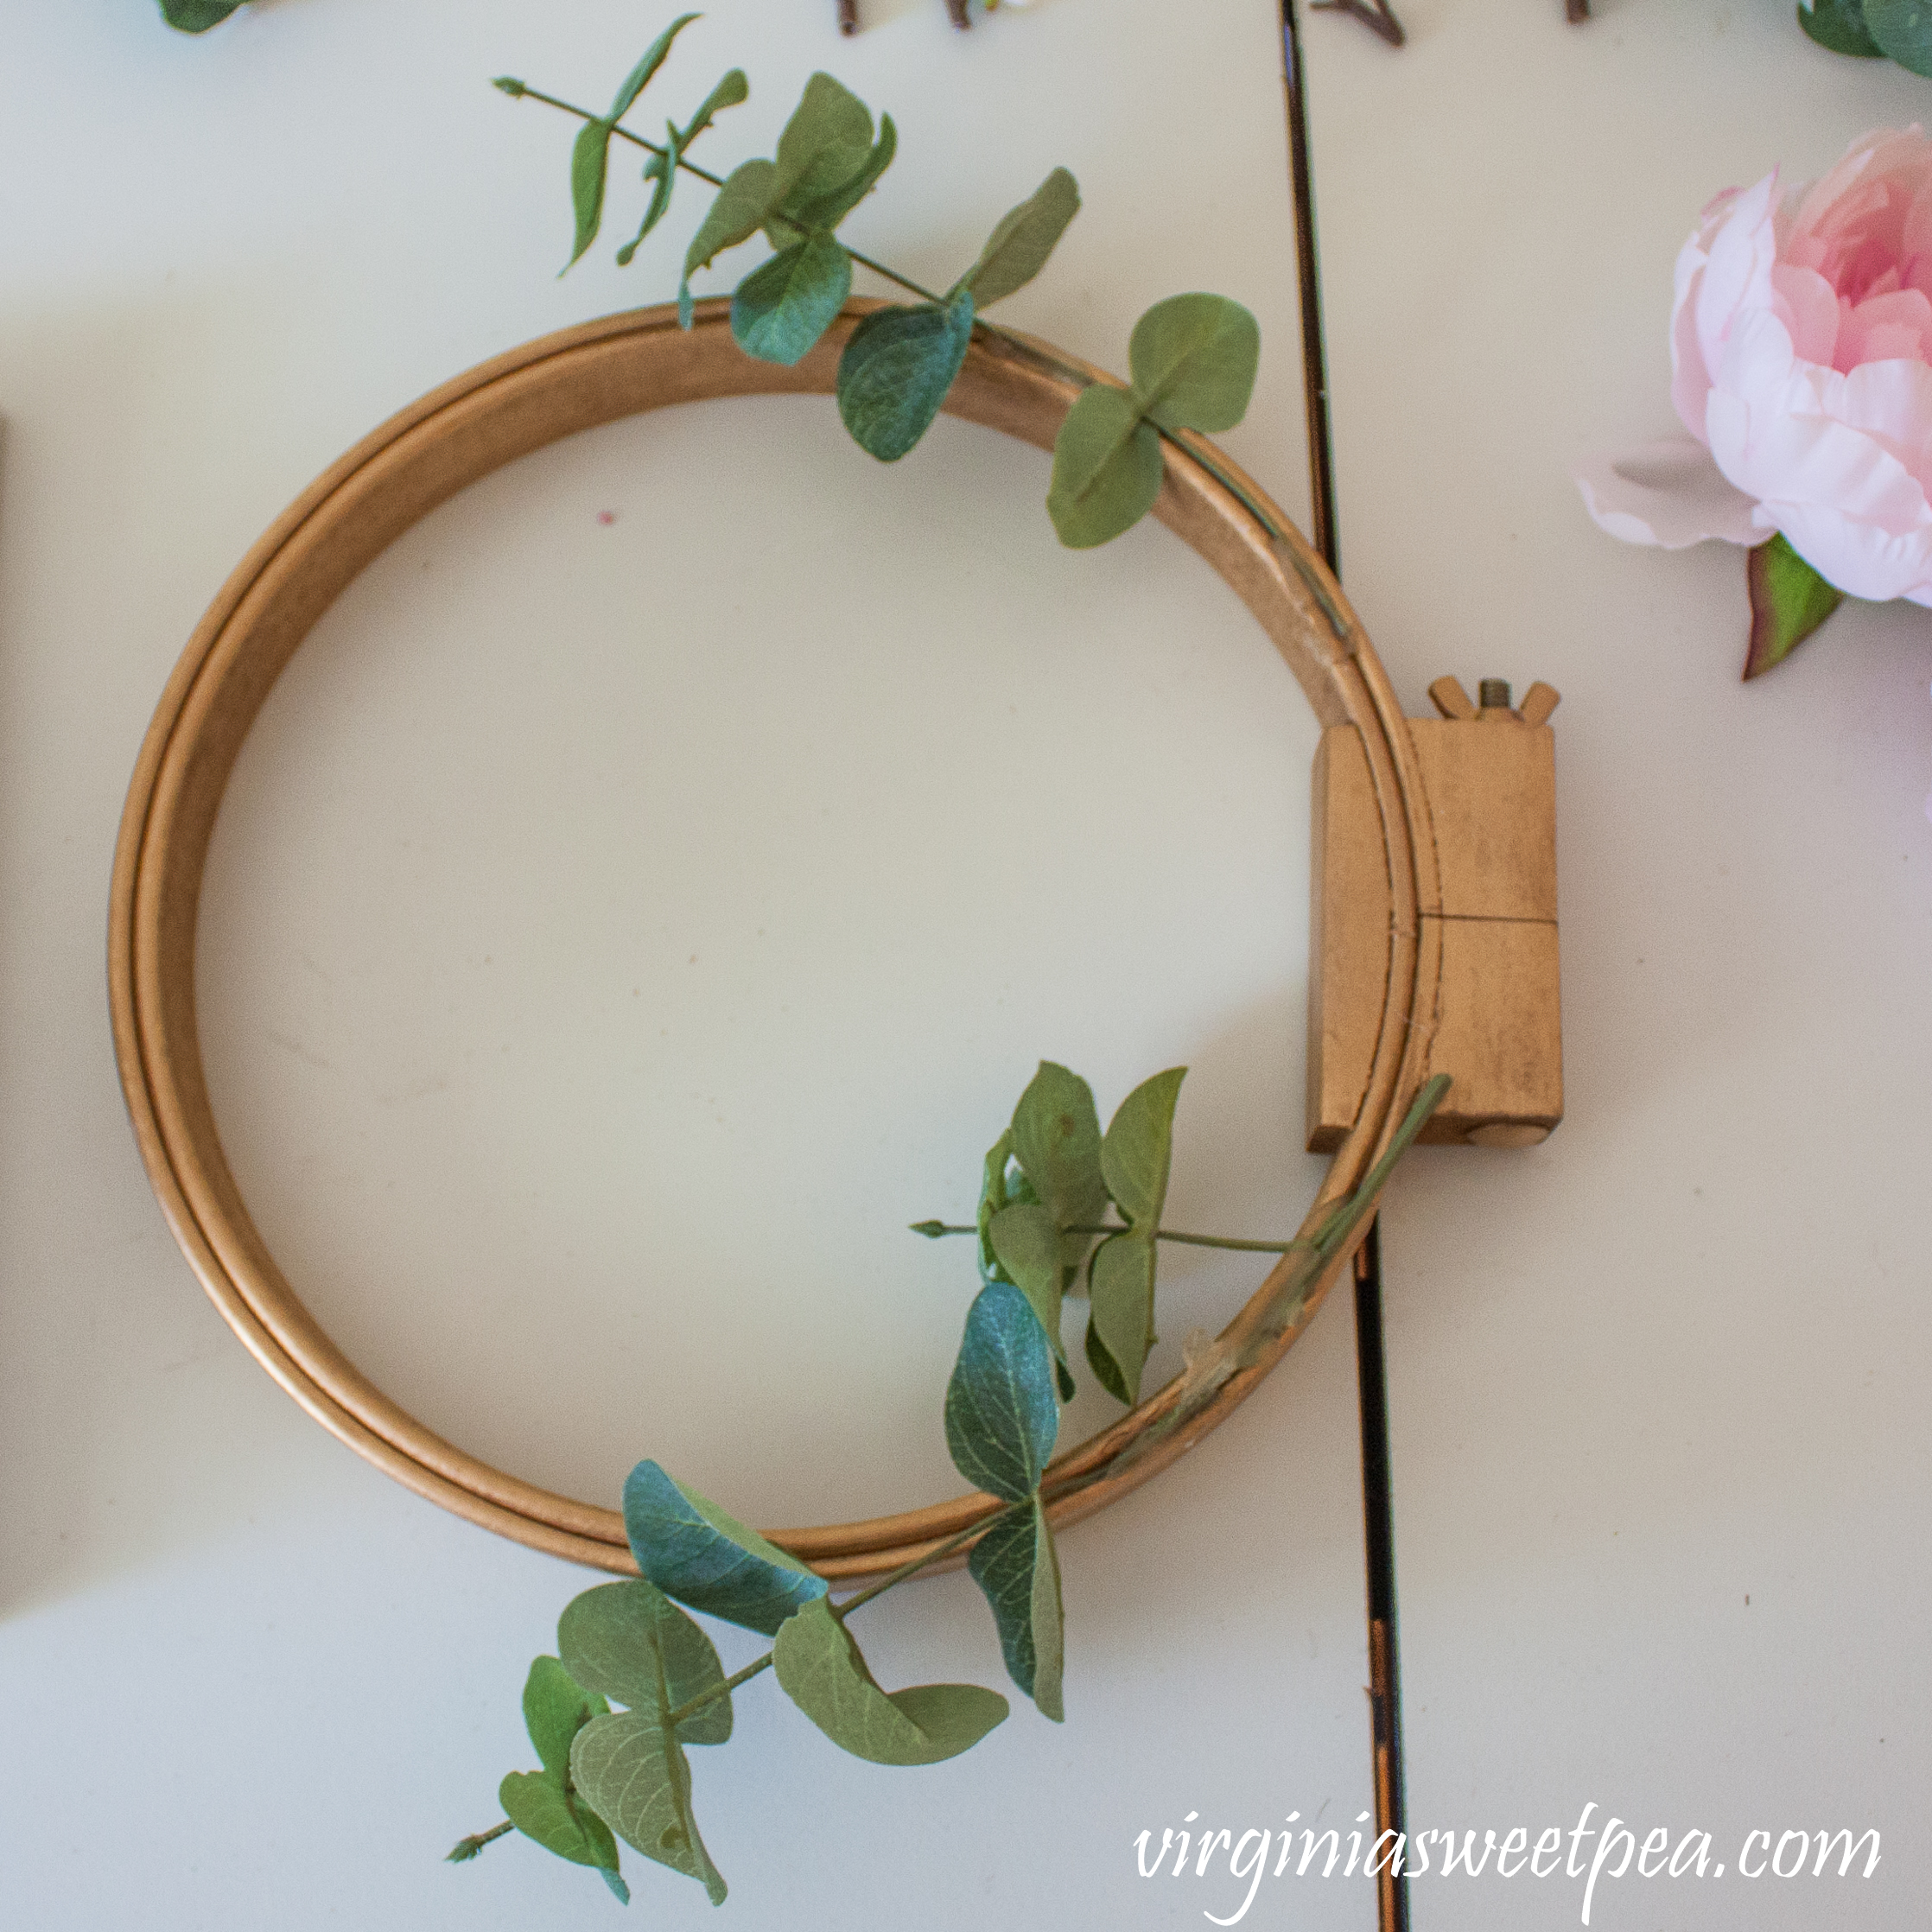 Tutorial to make a spring embroidery hoop wreath